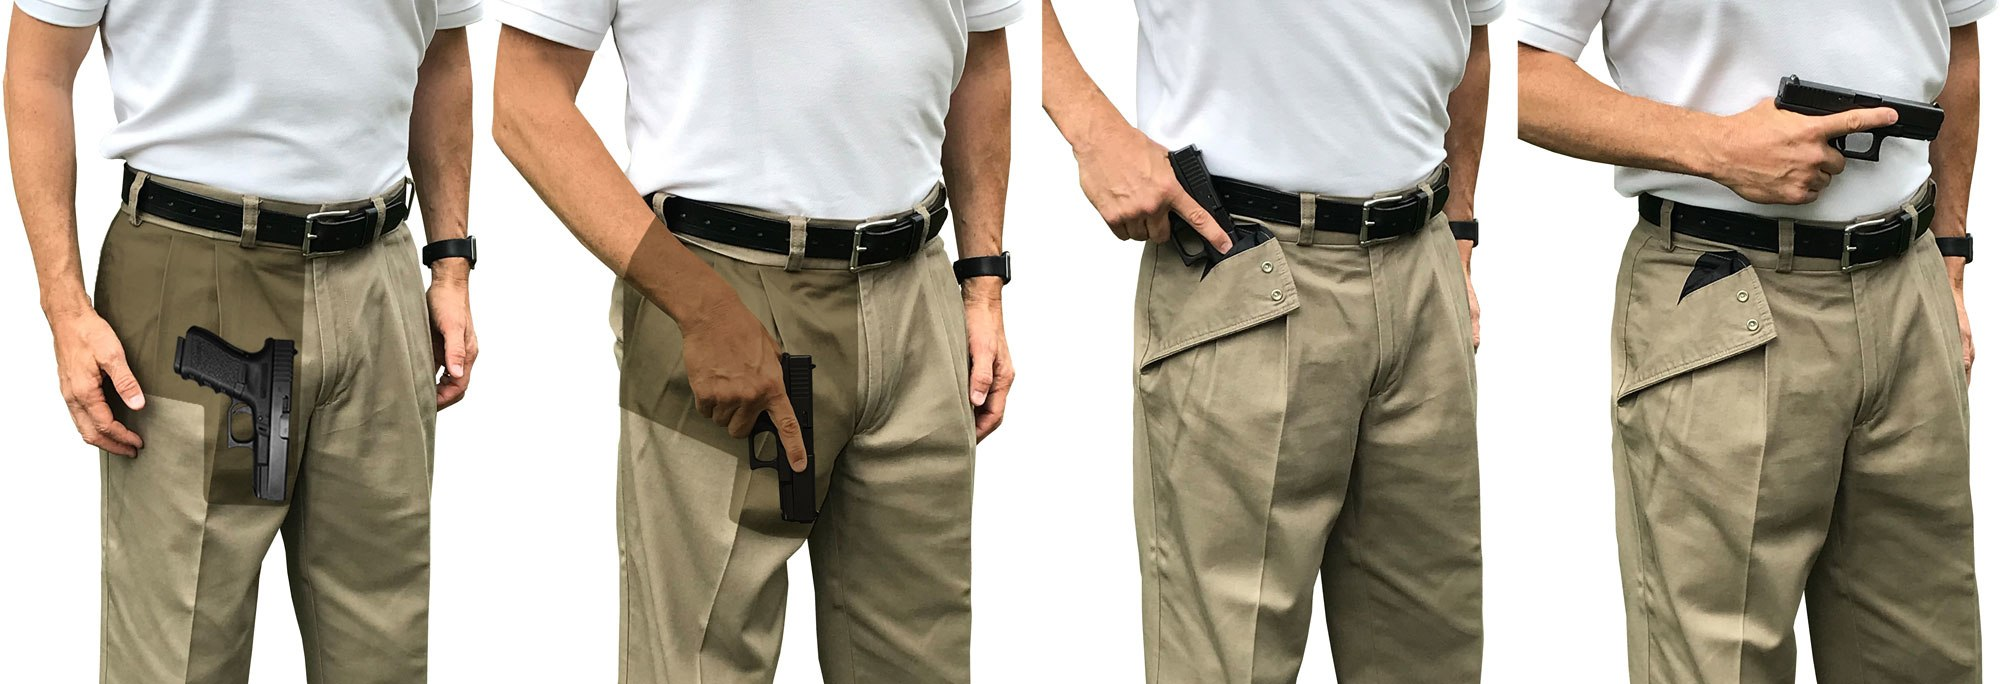 Concealed Carry Holsters and Concealed Carry Pants: Comfortable Deep Fast